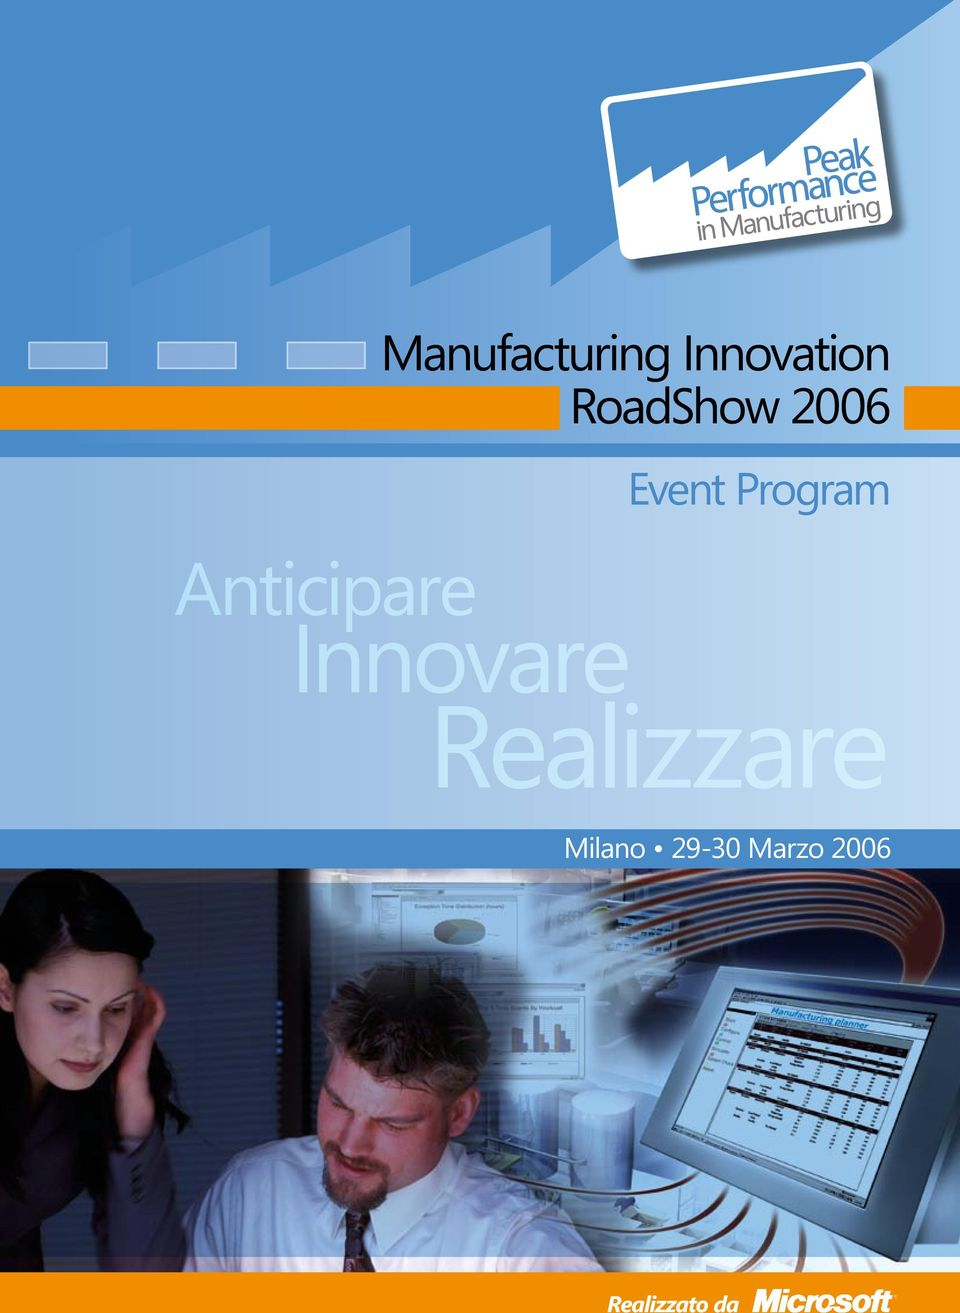 Innovare Event Program